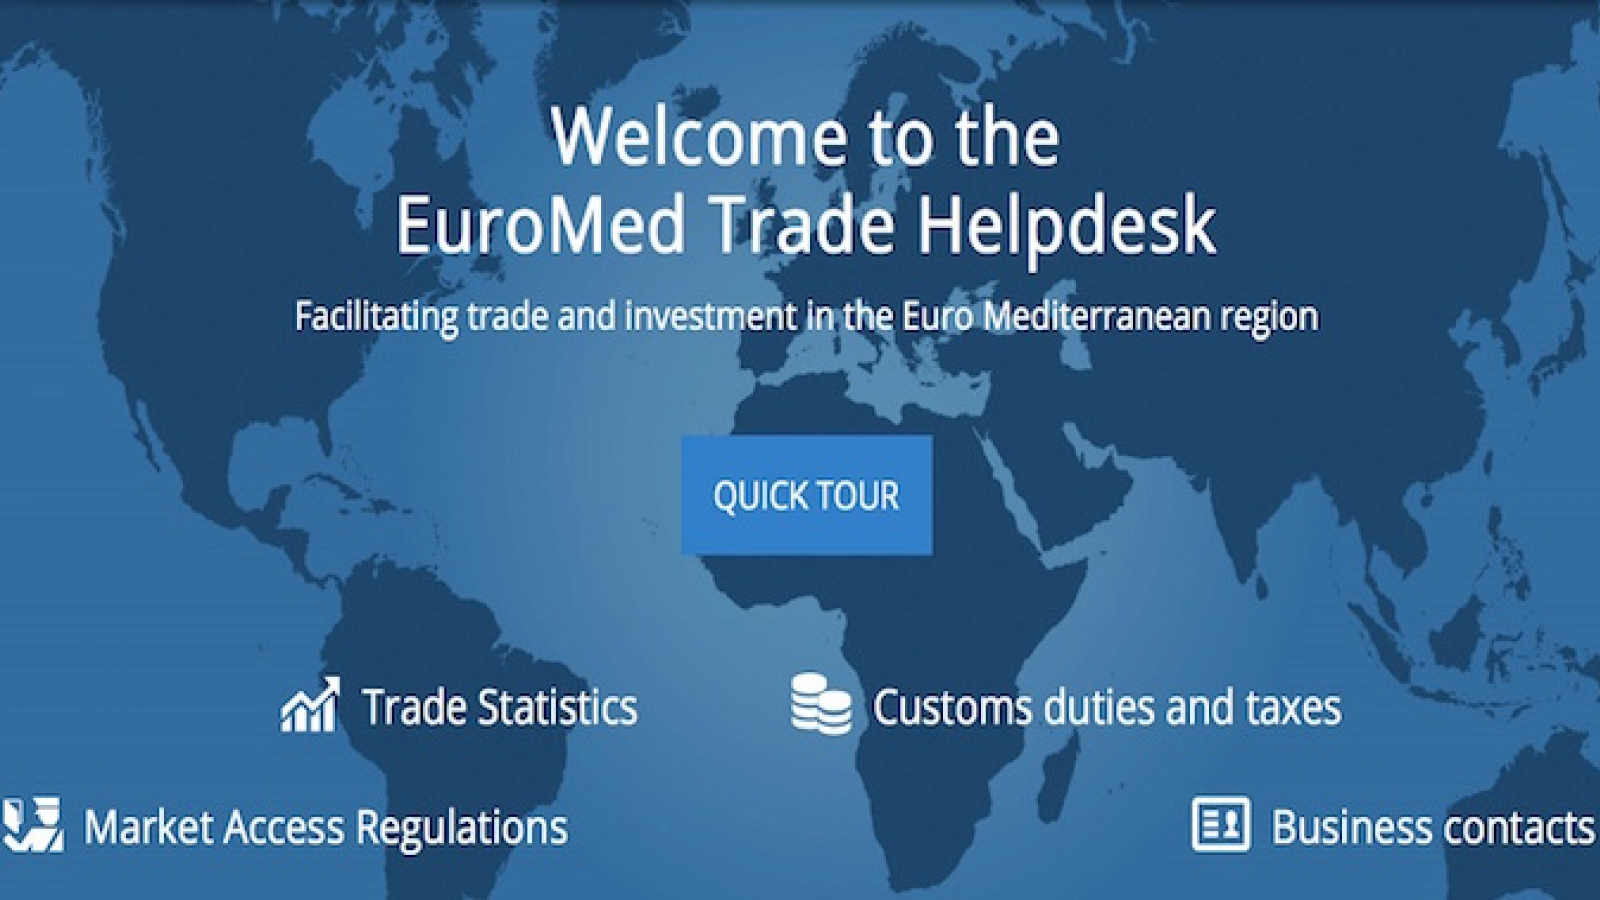 New EuroMed Trade Helpdesk aims to boost trade in Mediterranean region